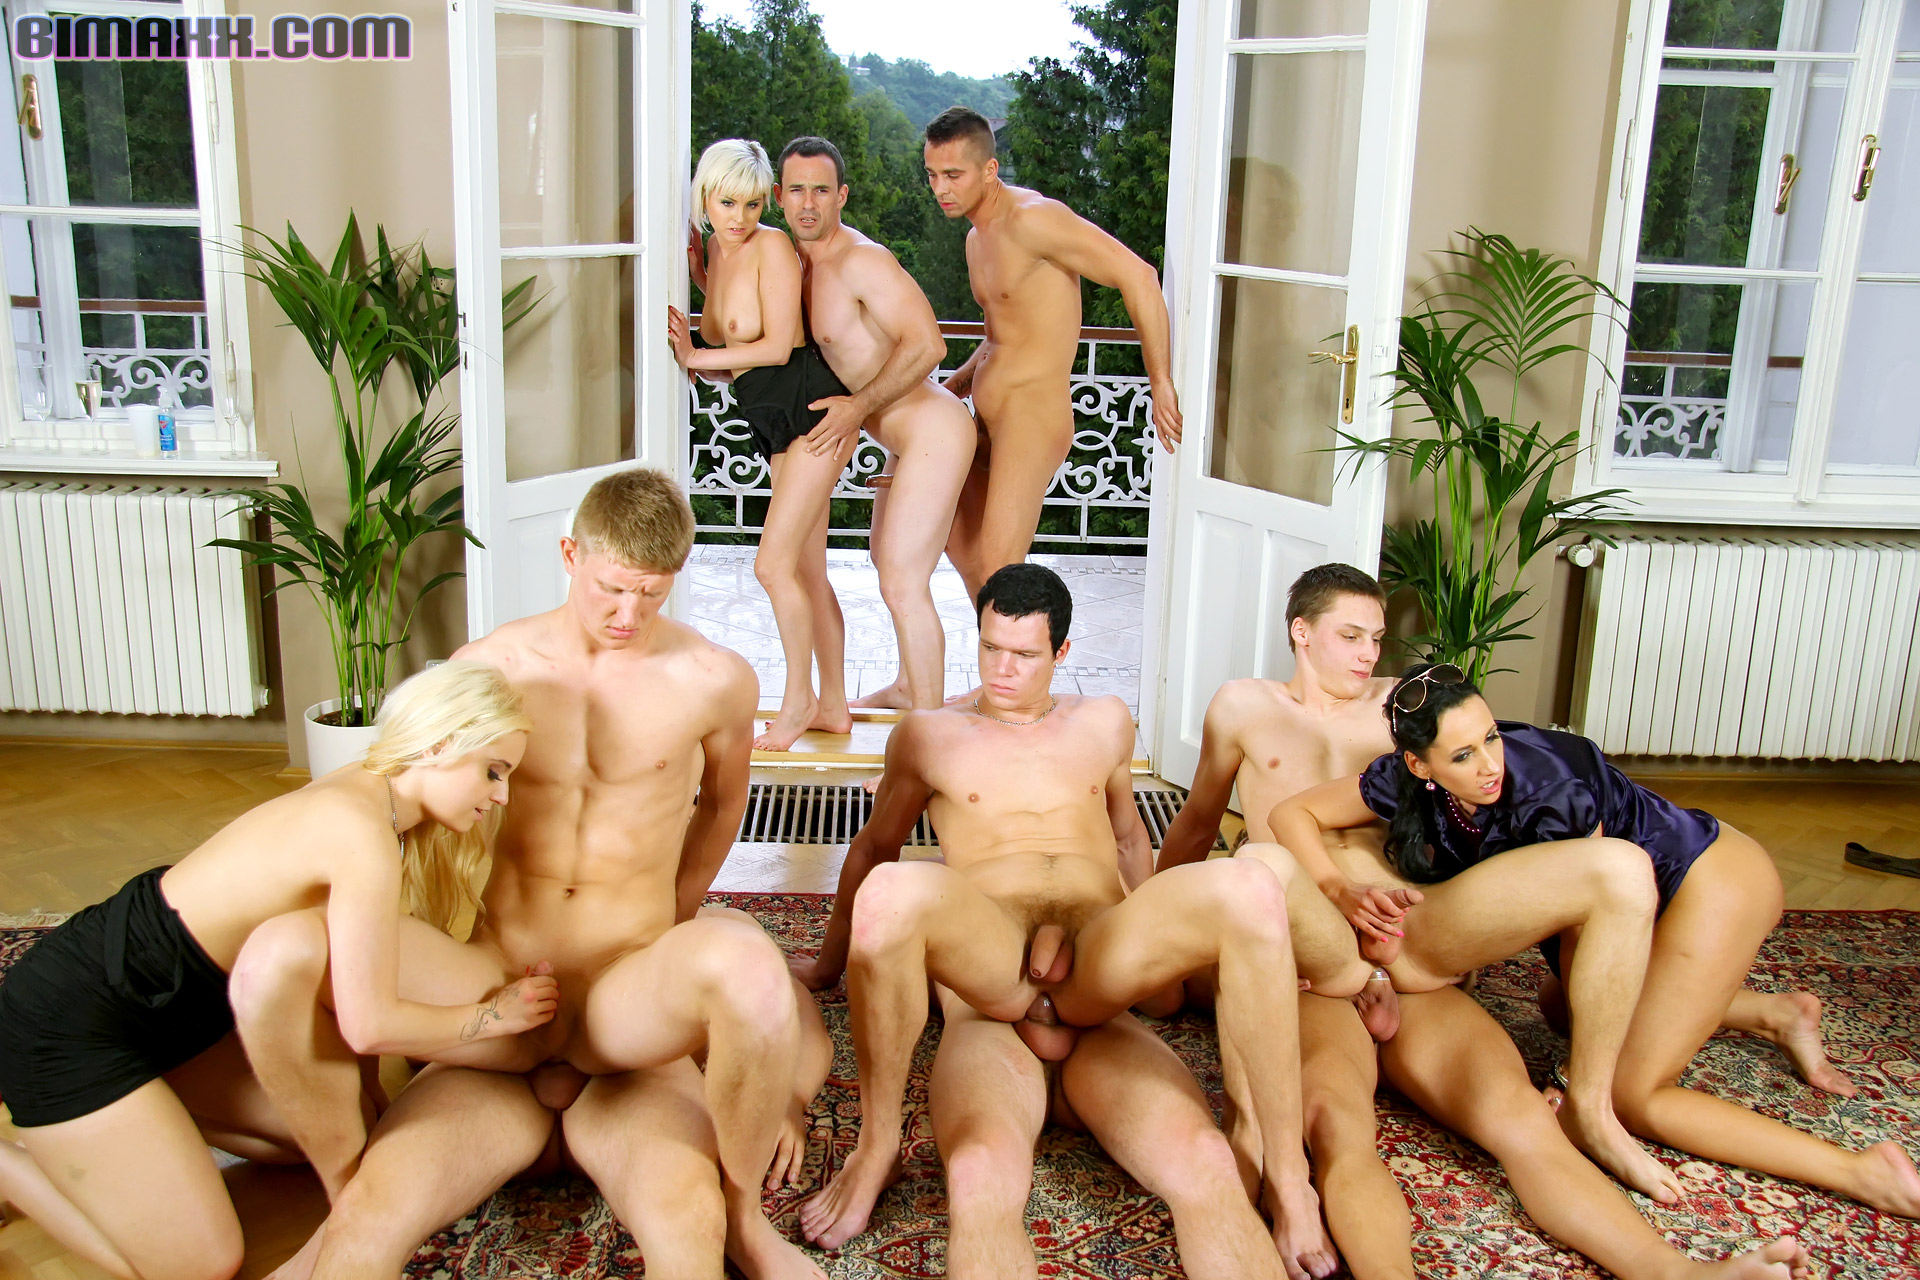 Hot Lady Looking Group Orgy Tuscaloosa